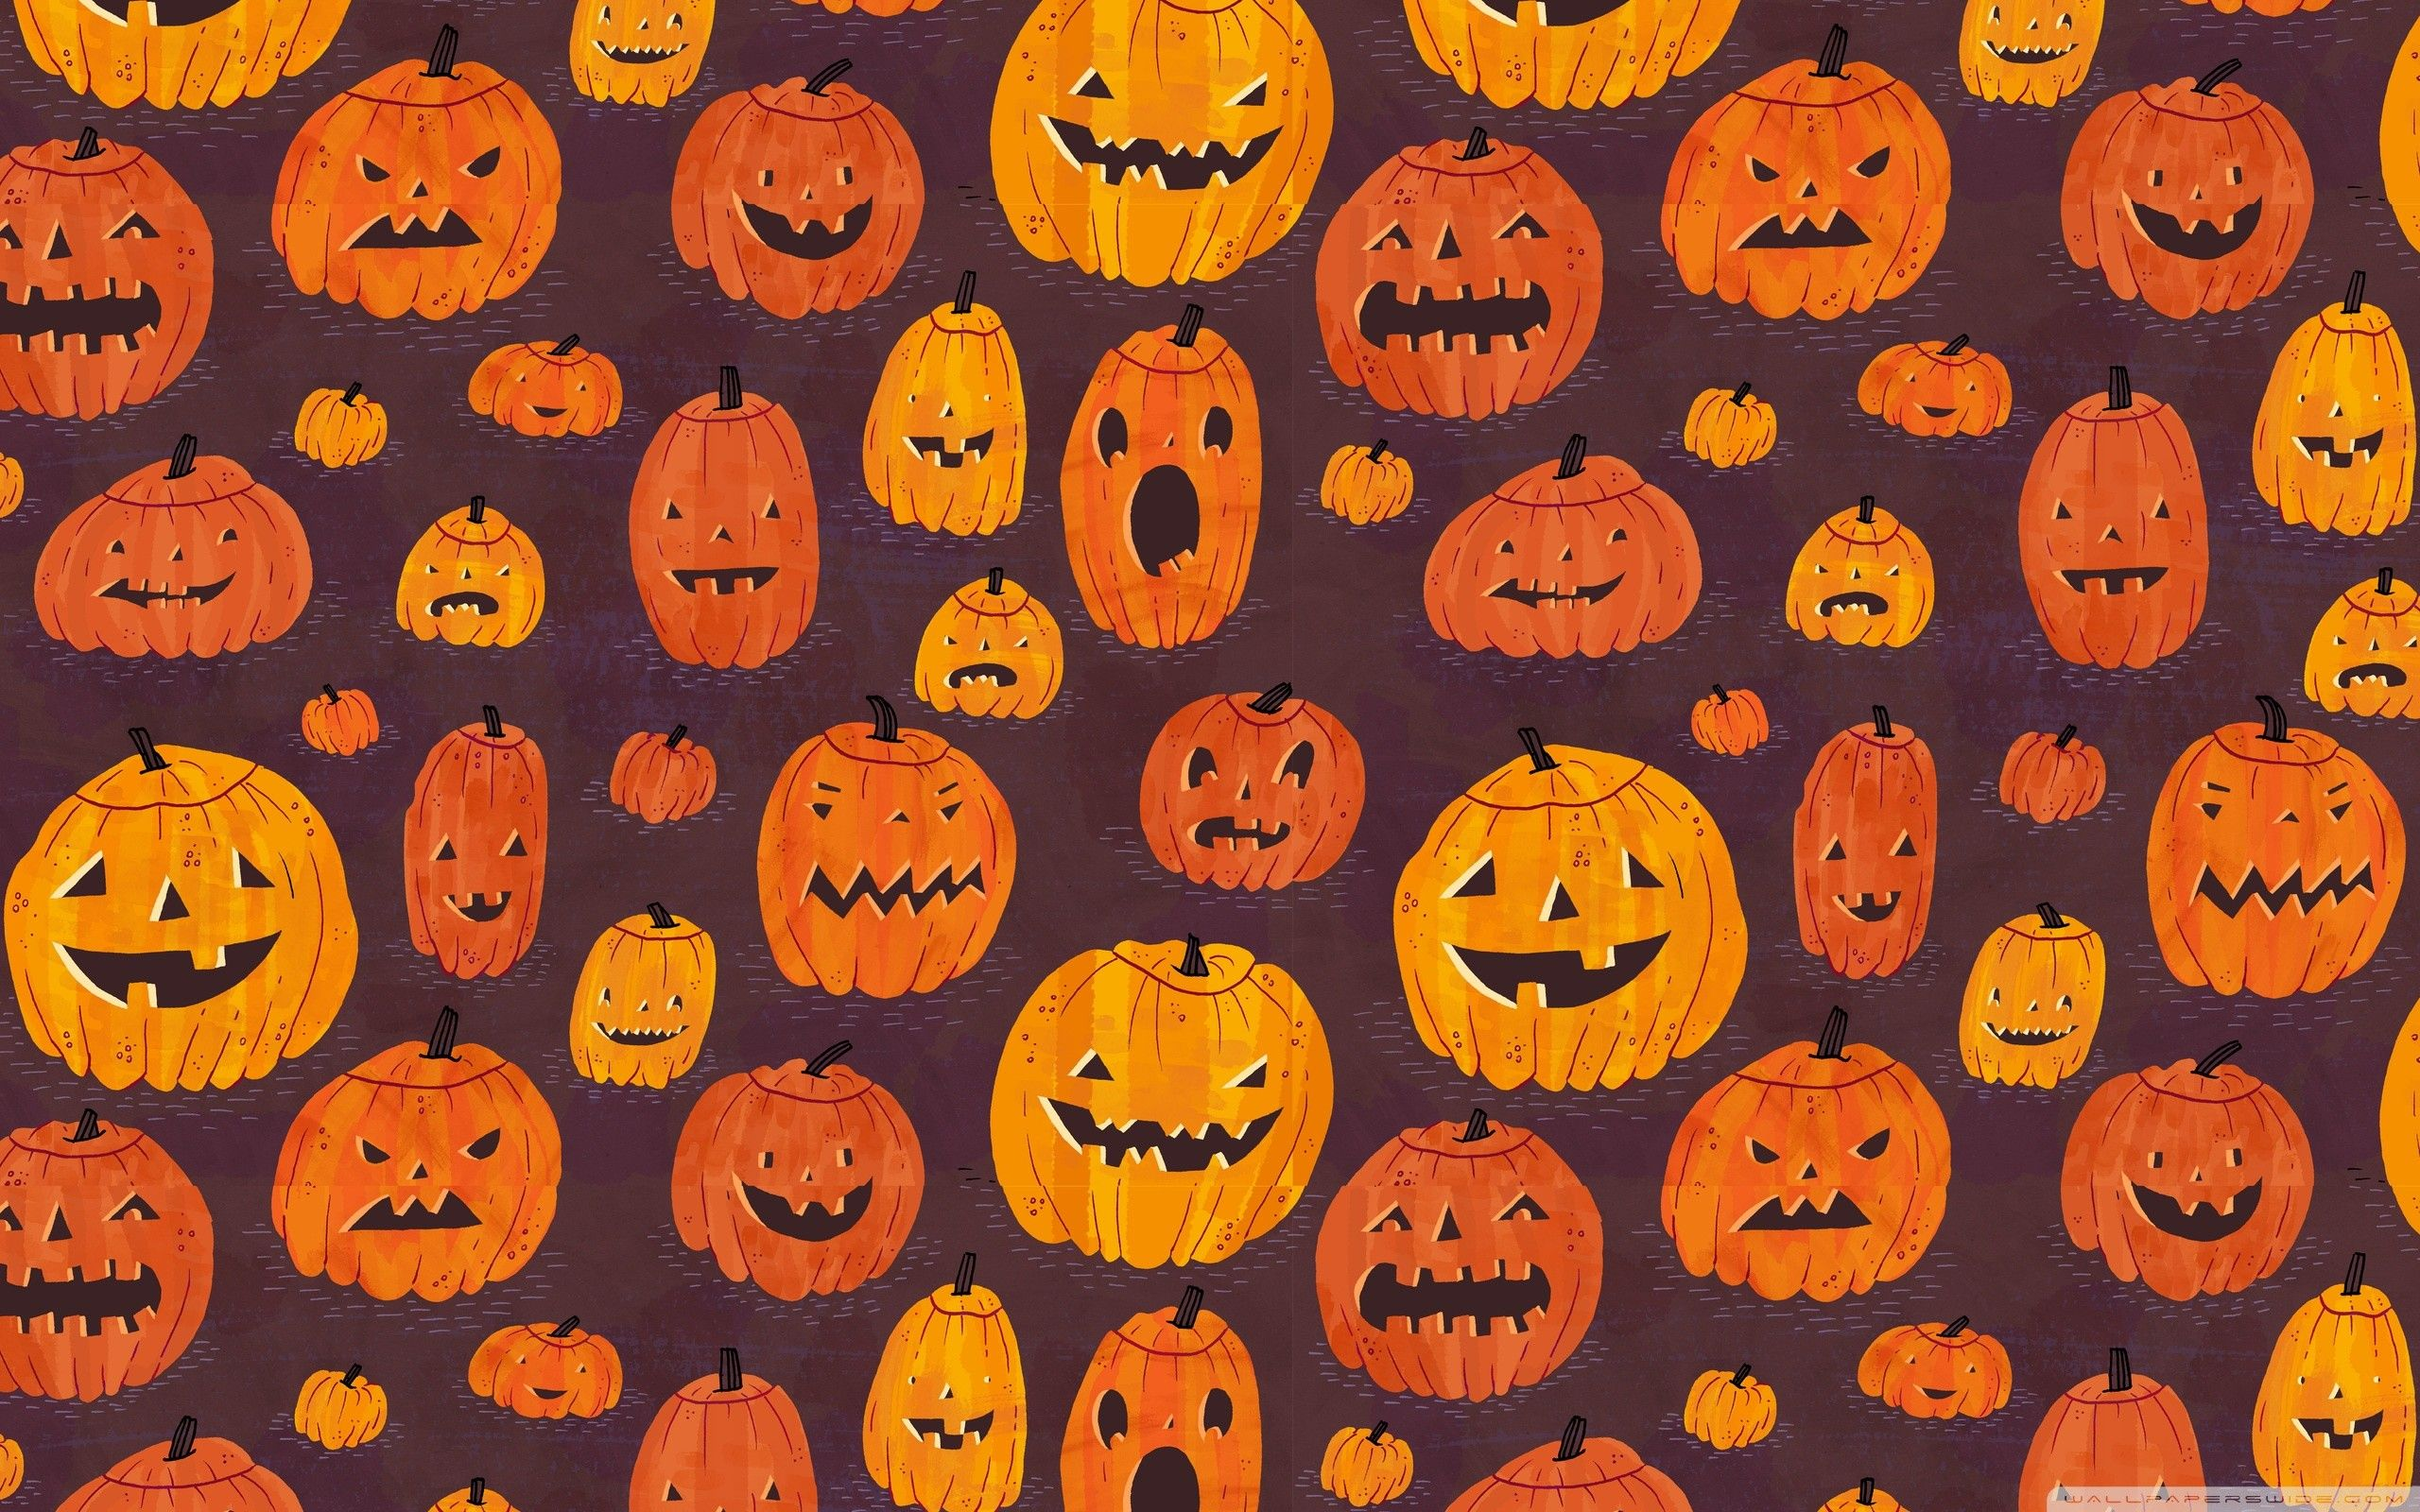 Cute Halloween Desktop Wallpaper 2560x1600 Ipad Pro Halloween Desktop Wallpaper Pumpkin Wallpaper Halloween Patterns